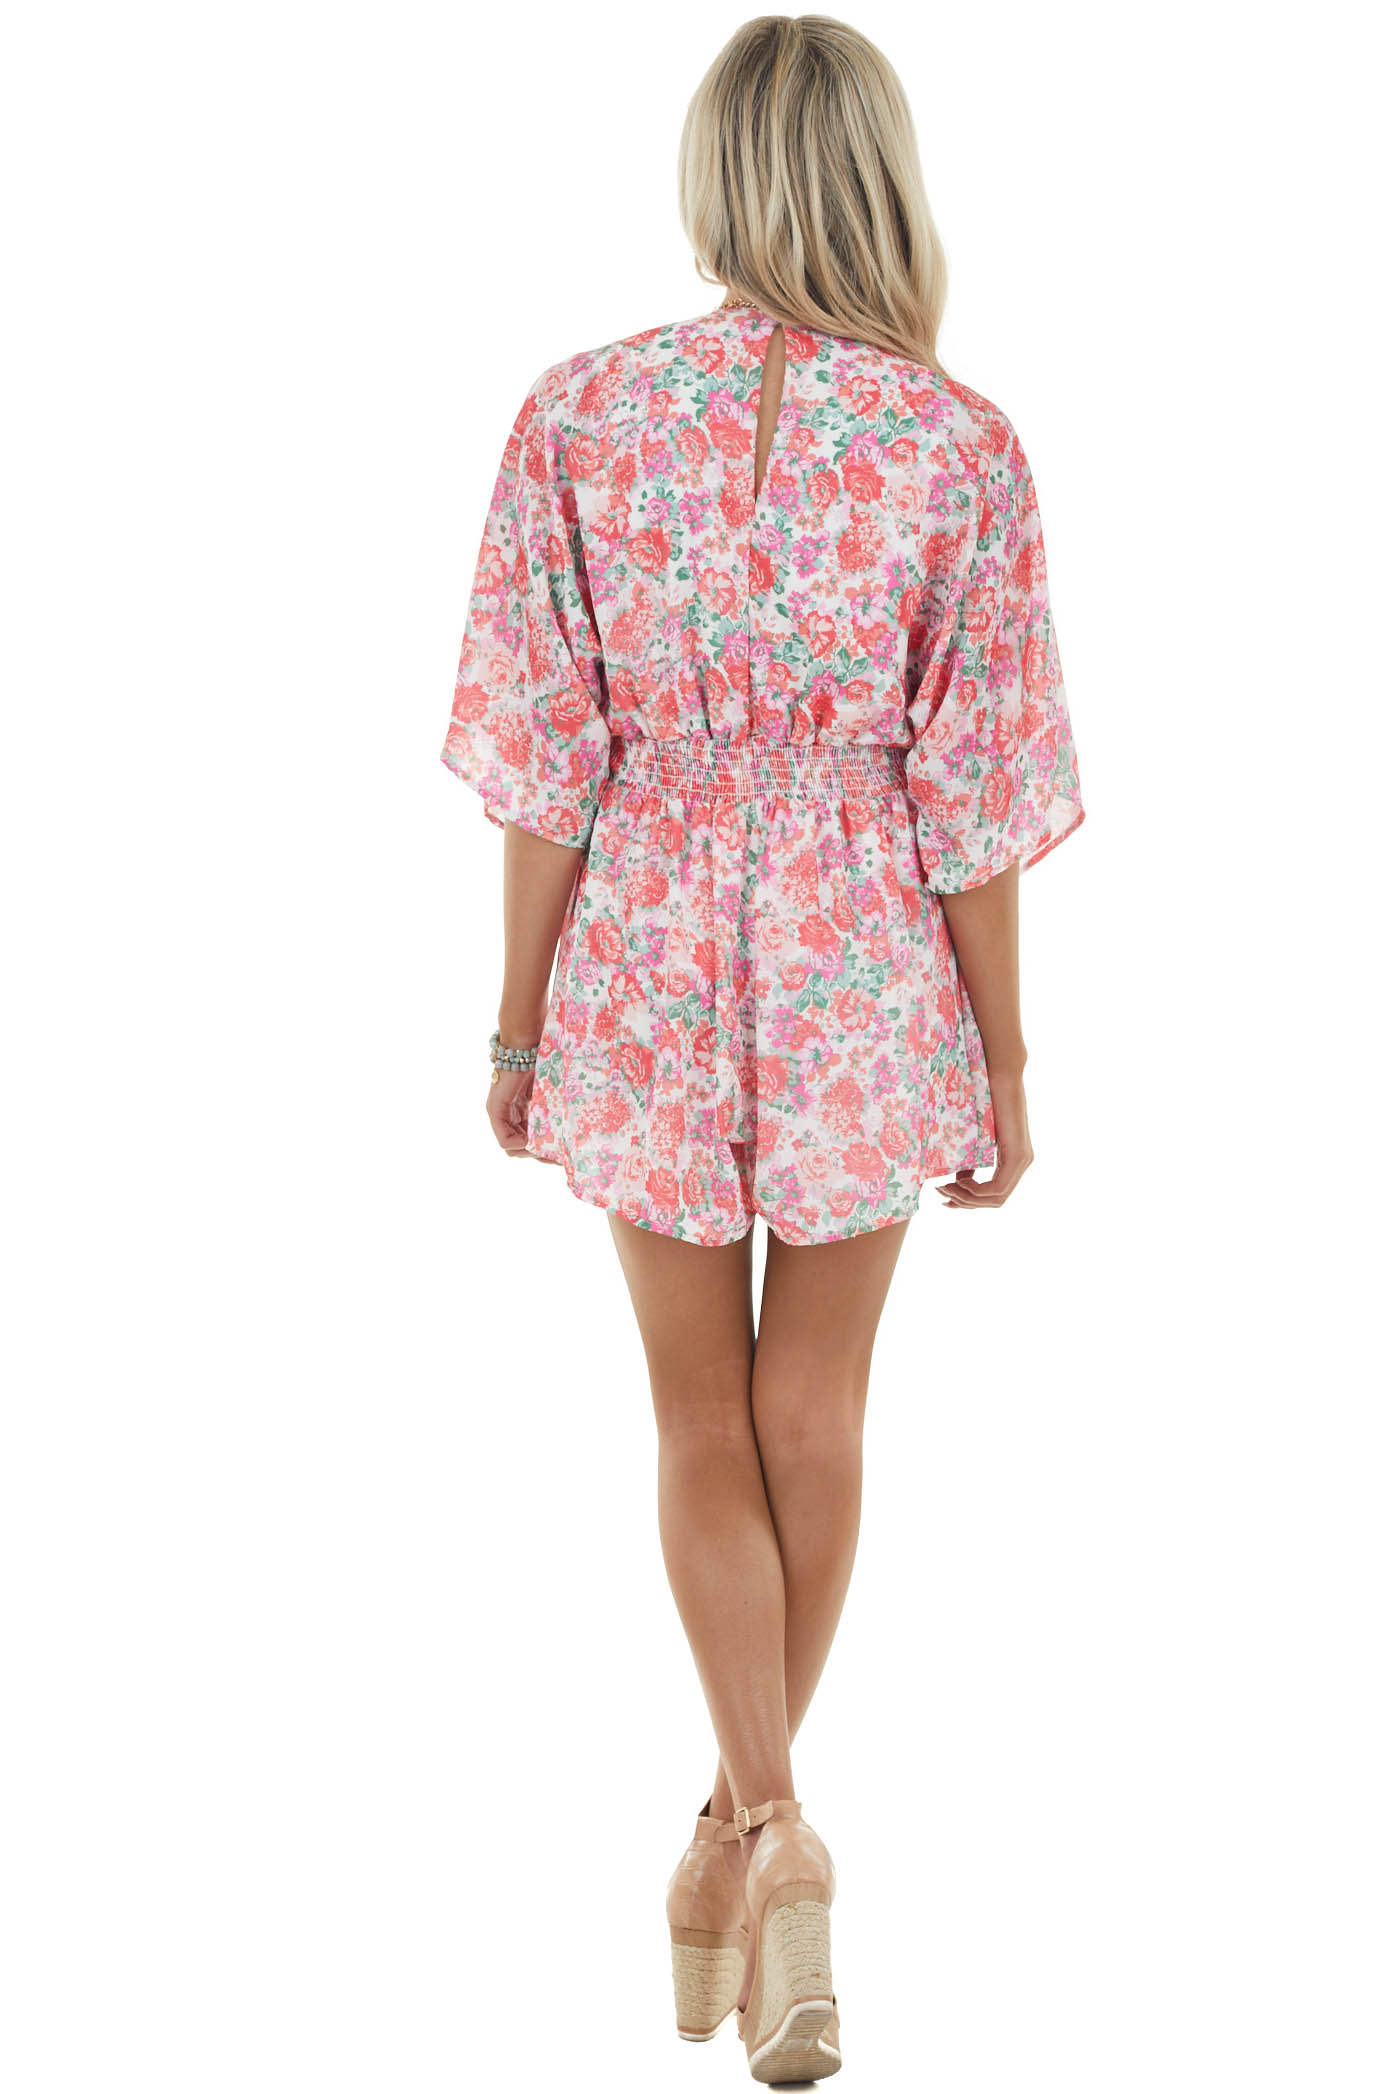 Crimson and Pearl Floral Print Woven Romper with Tie Detail